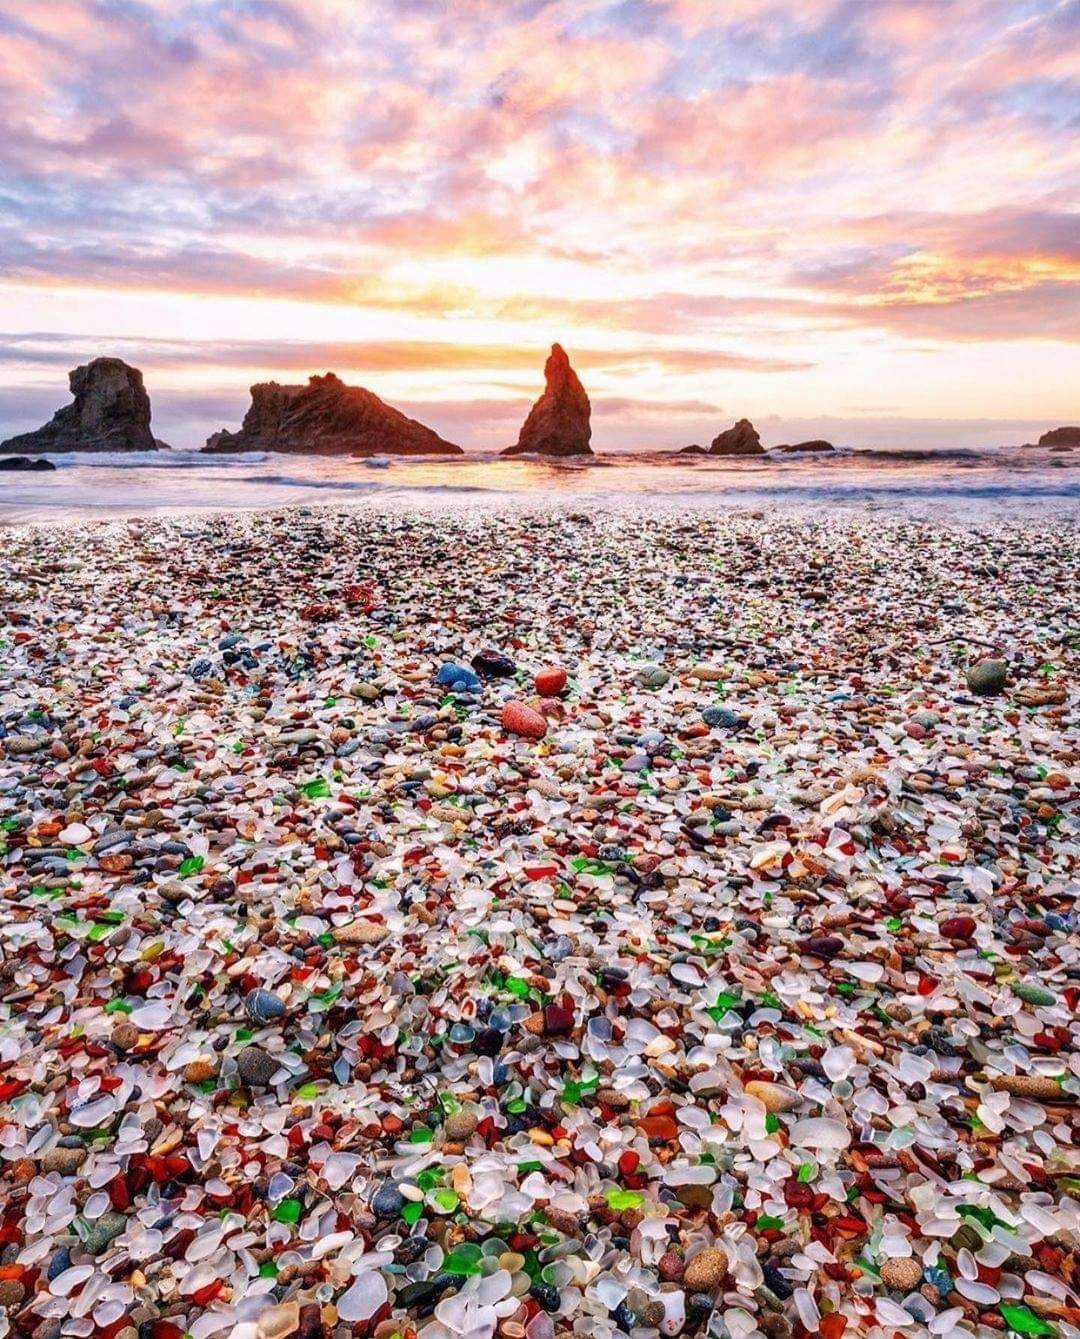 1Pic - Glass Beach is one of California's most unusual and colorful attractions